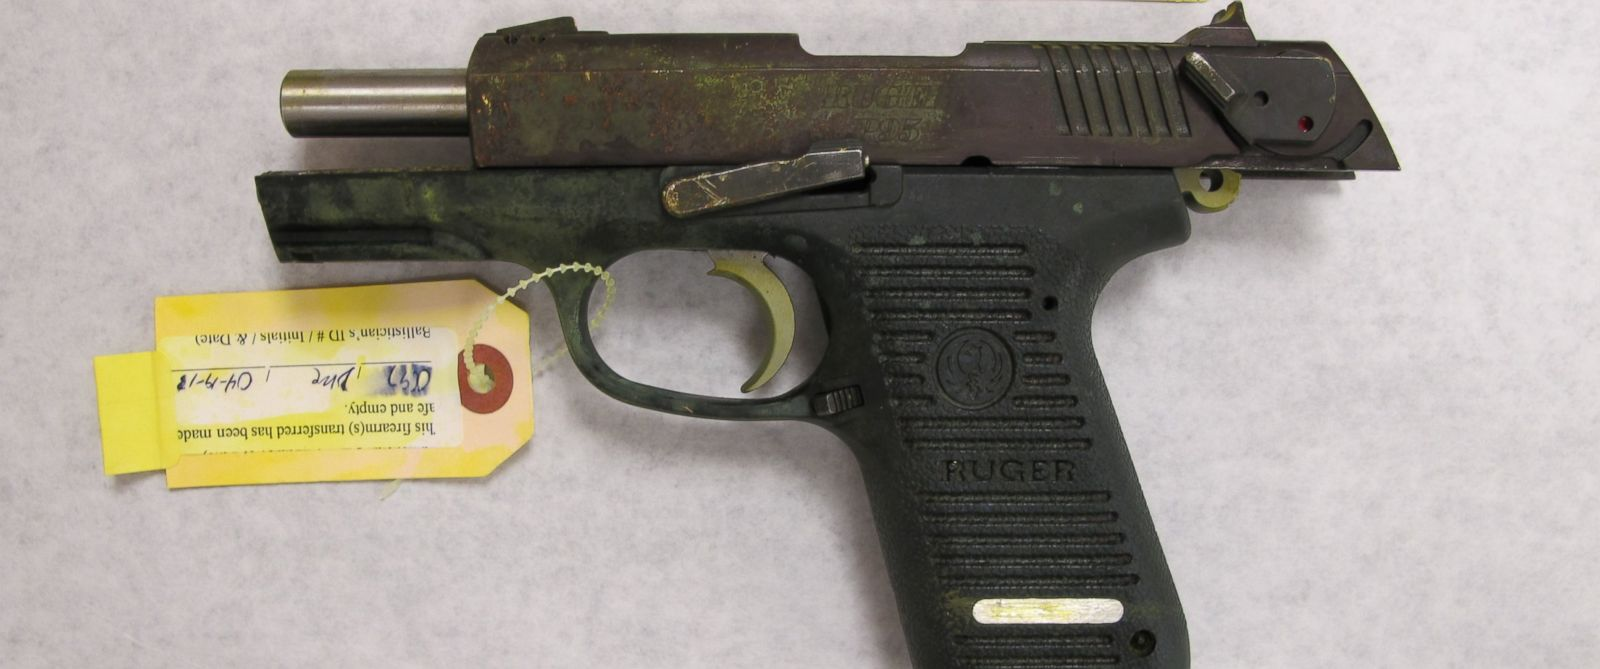 PHOTO: Evidence presented against Dzhokhar Tsarnaev in the Boston Marathon bombing case included this Ruger 9mm pistol, allegedly used by the Tsarnaev brothers days after the marathon attack.